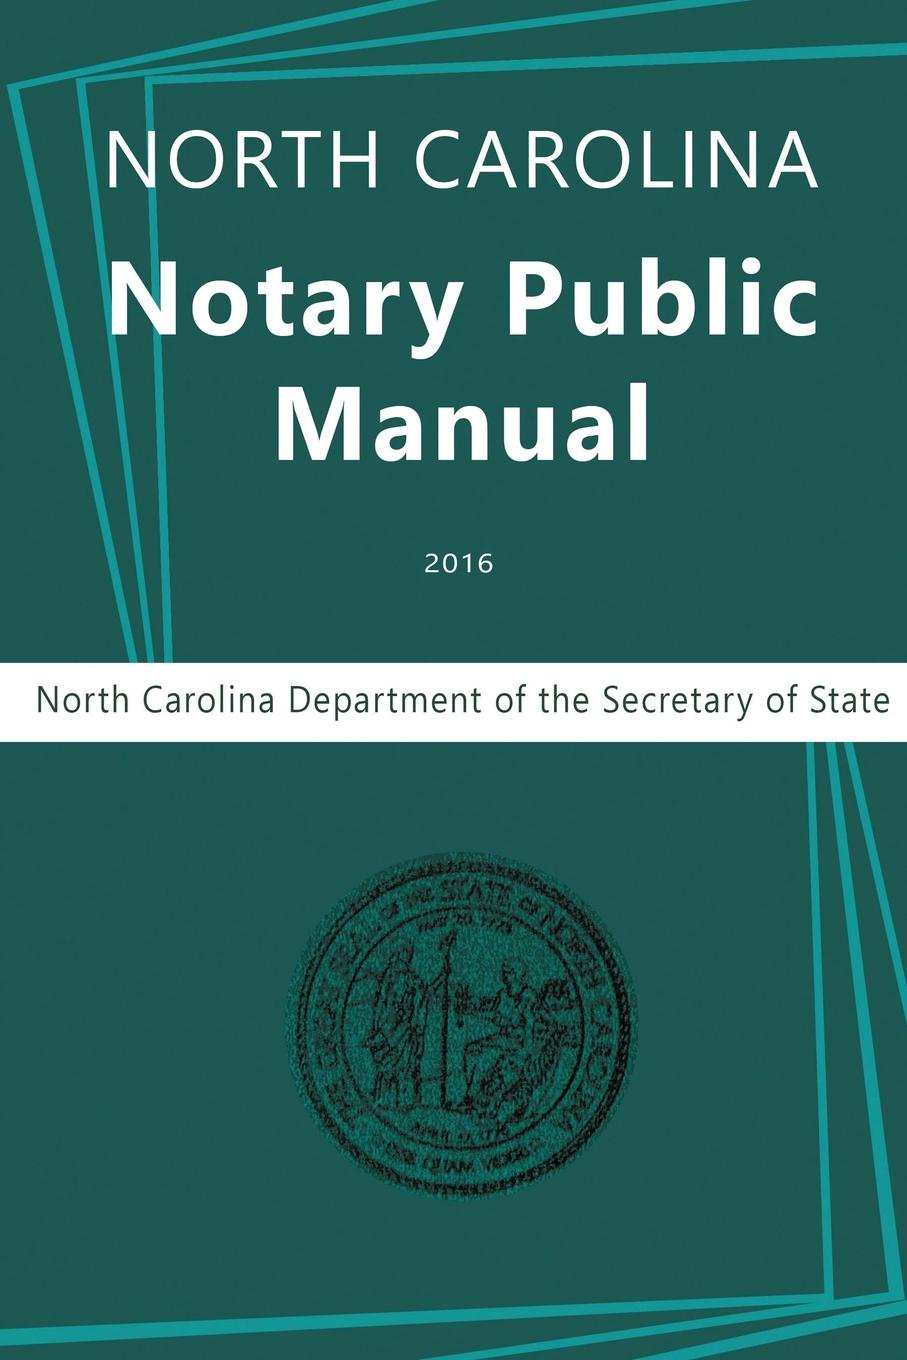 North Carolina Department of the, Secretary of State, NC Department Secretary of State North Carolina Notary Public Manual, 2016 cherniavsky a g law as the basis of interaction of state and society round table discussion number 4